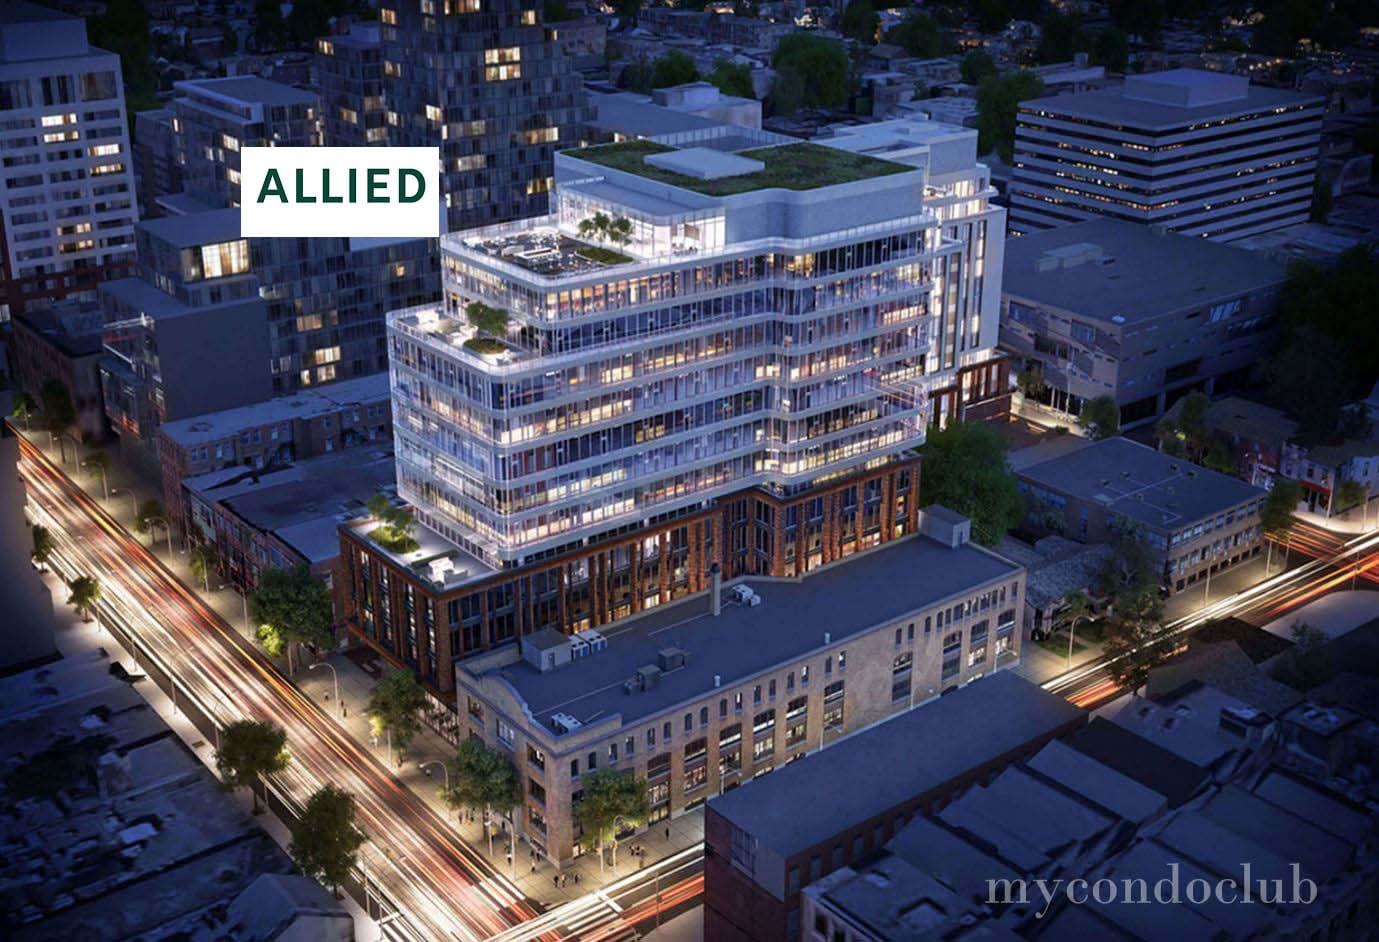 kingly-condos-602KingStreetWestTorontoONriocan-alliedpropertiescondoreit-mycondoclub